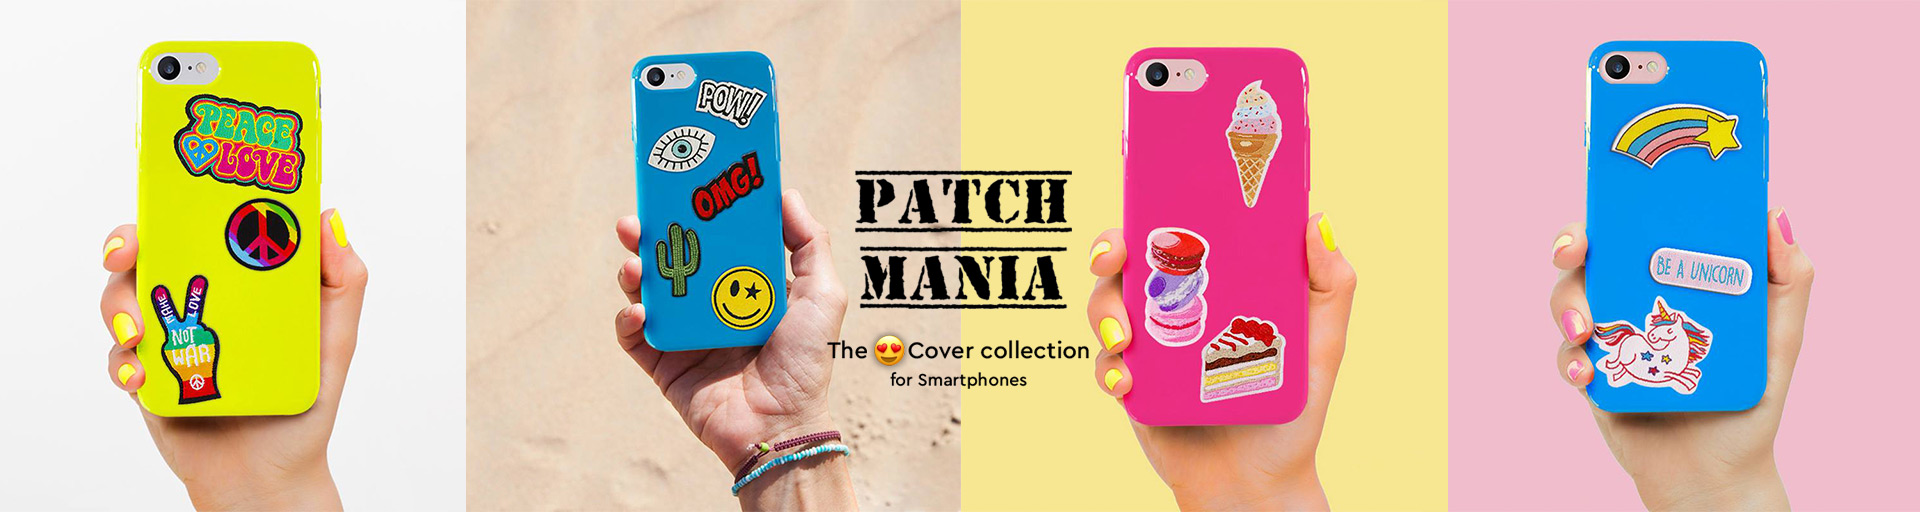 Puro_web_banner_patch_mania